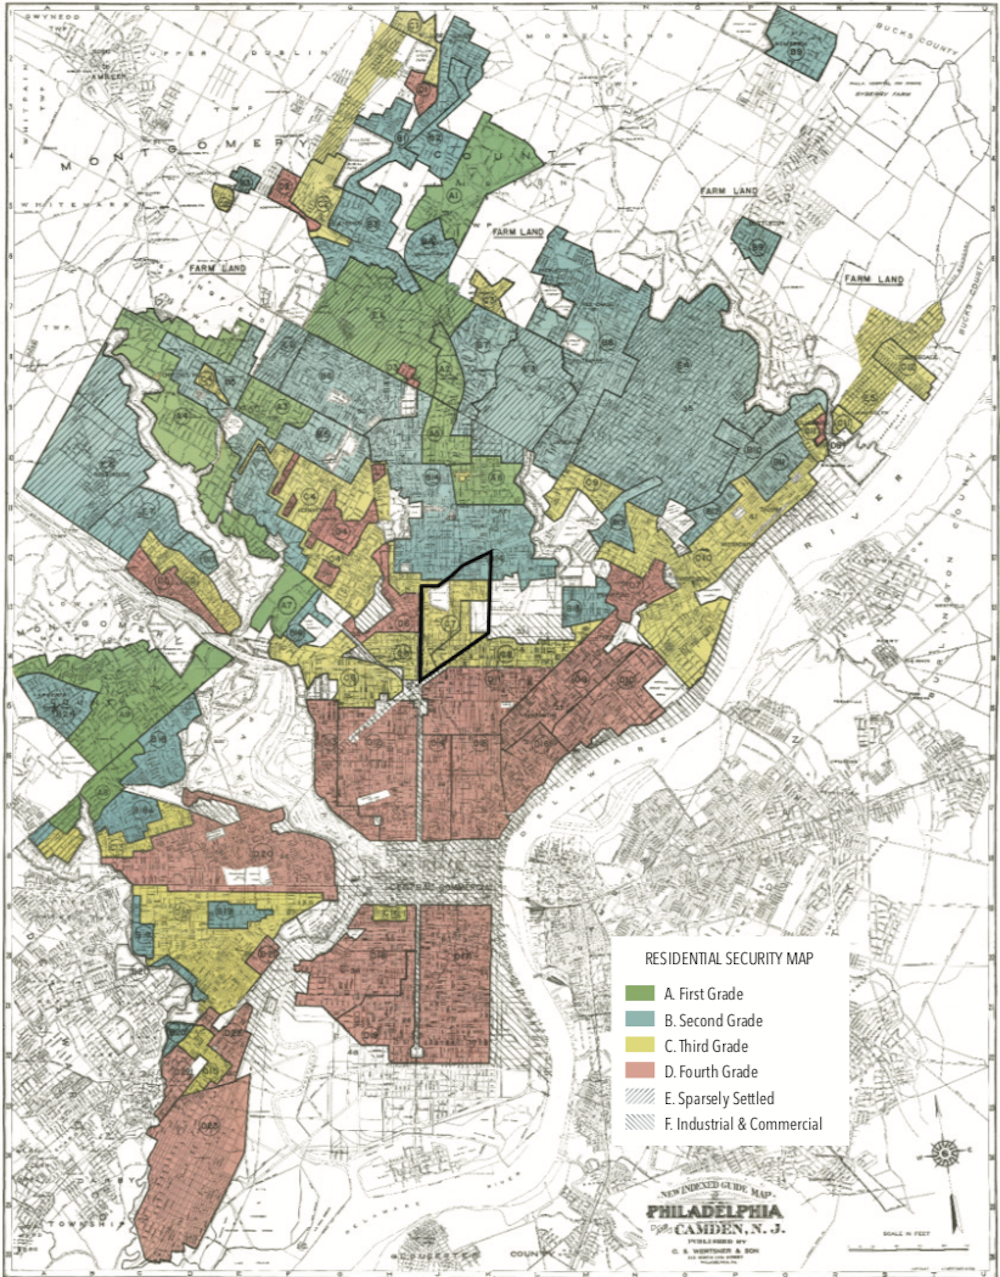 A 1940 Home Owners Loan Corporation redlining map of Philadelphia with Hunting Park outlined